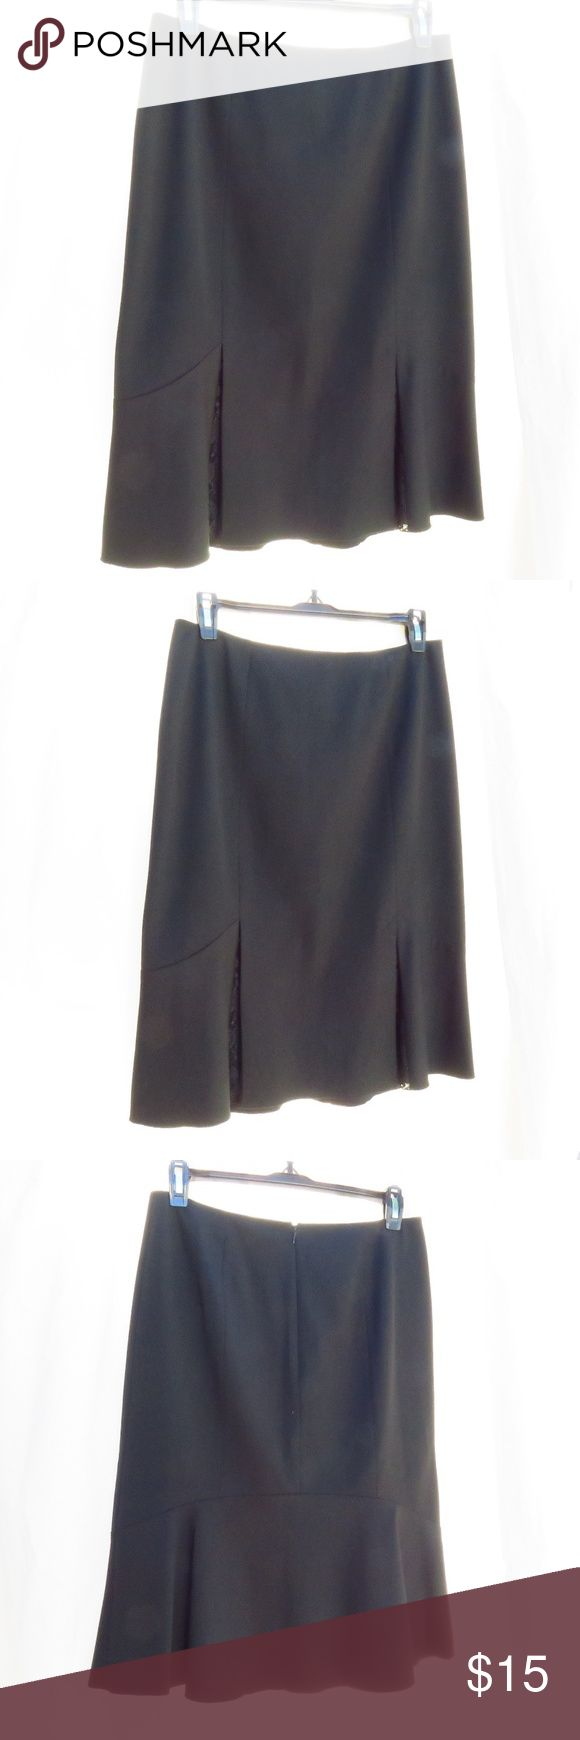 """Nine West Black Lace Tulip Pencil Skirt Excellent condition. Size:2 (Waist 28"""", Length 23"""")  Smoke-free, pet-free environment. Made China. Nine West Skirts Pencil"""